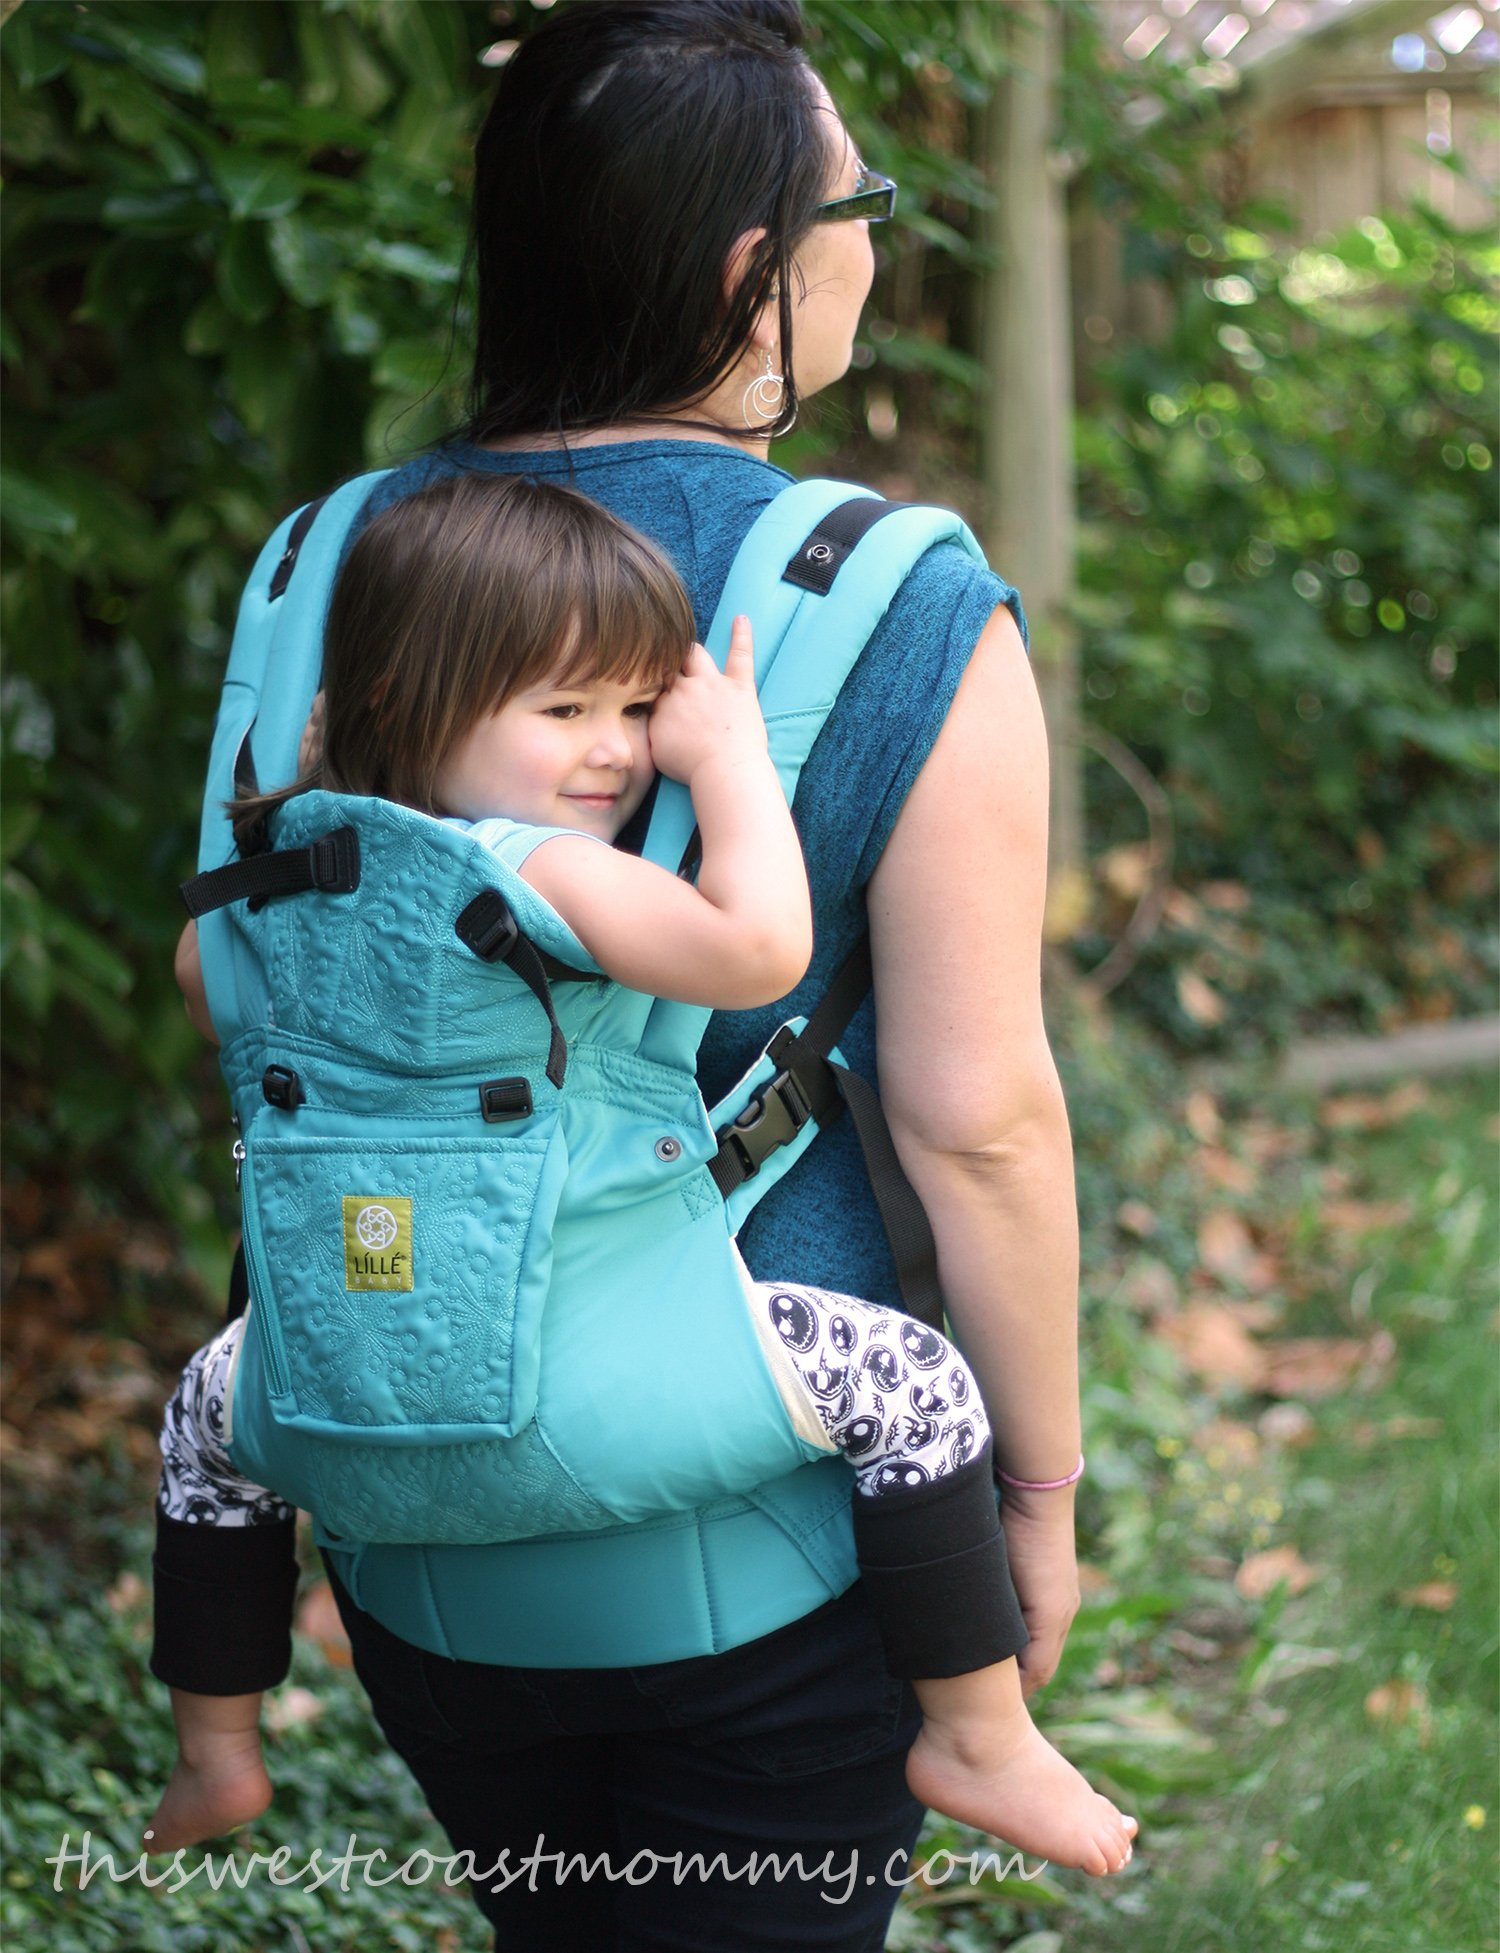 lillebaby complete carrier instructions